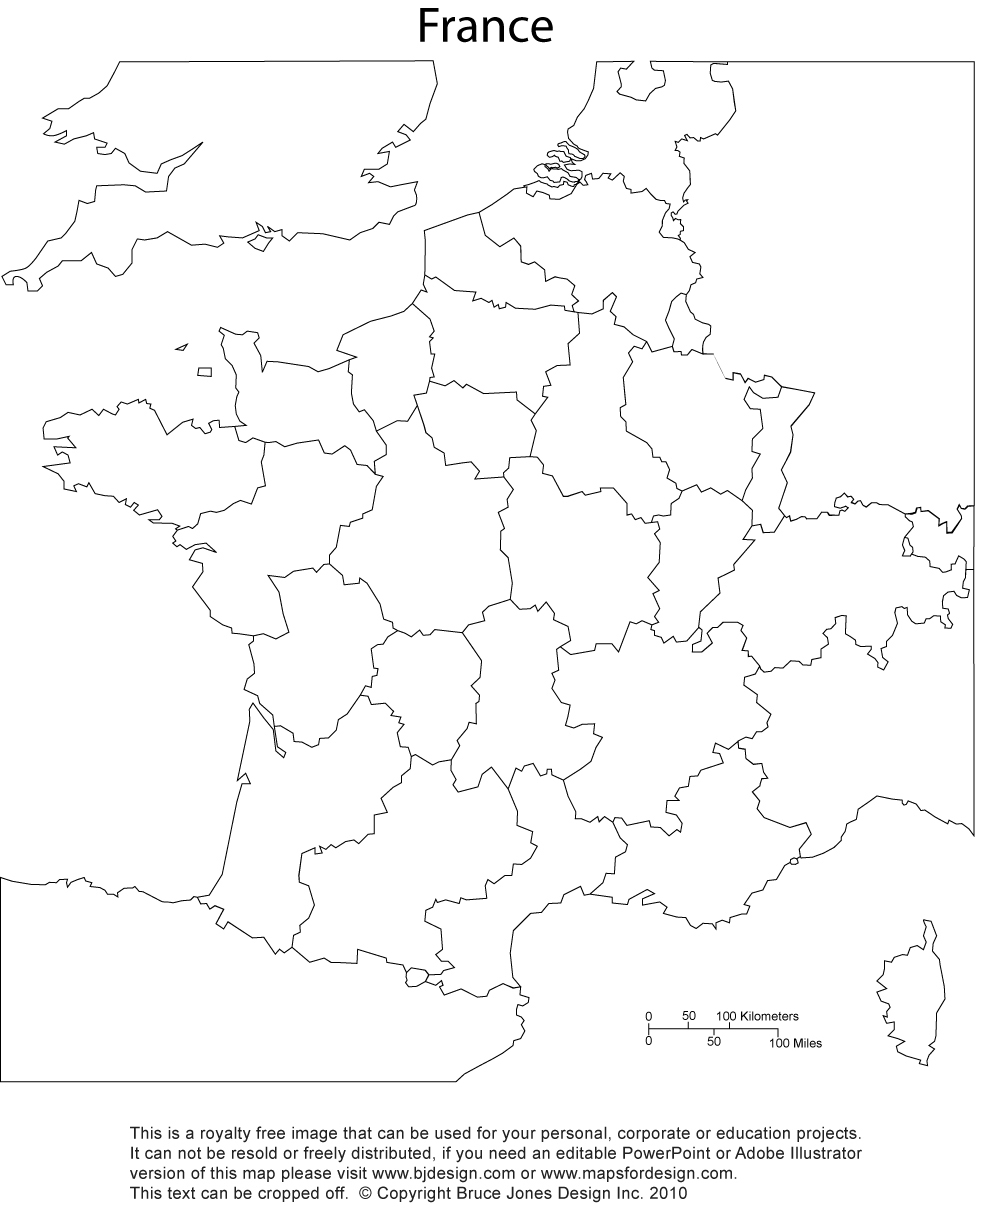 France printable, blank map of provinces, royalty free, clip art